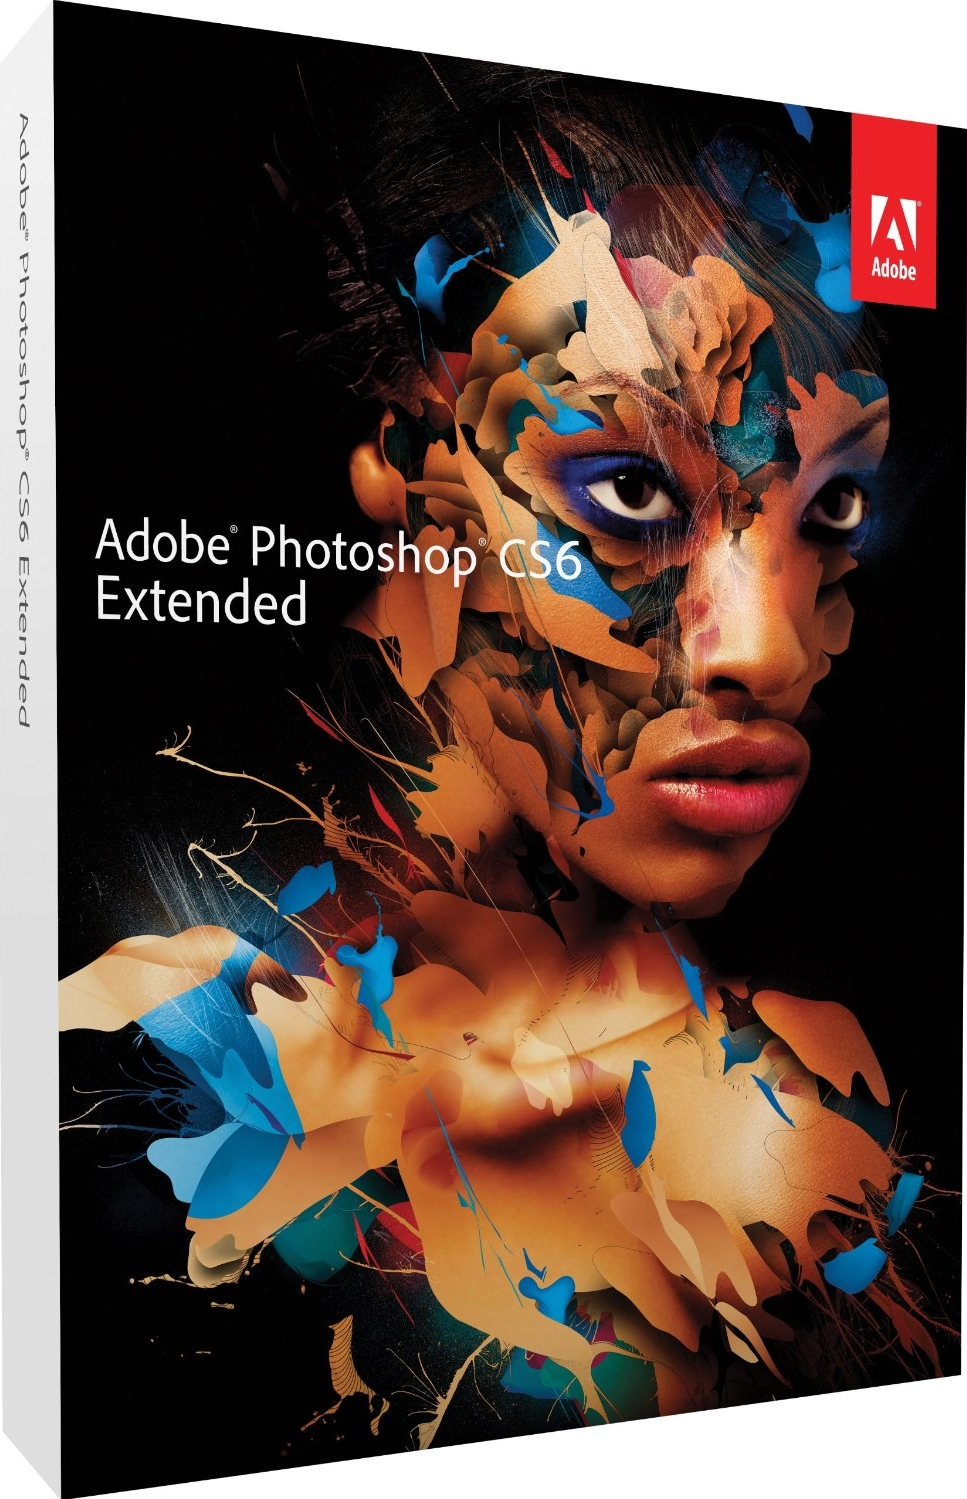 Adobe photoshop cs6 v13.0.1 extended